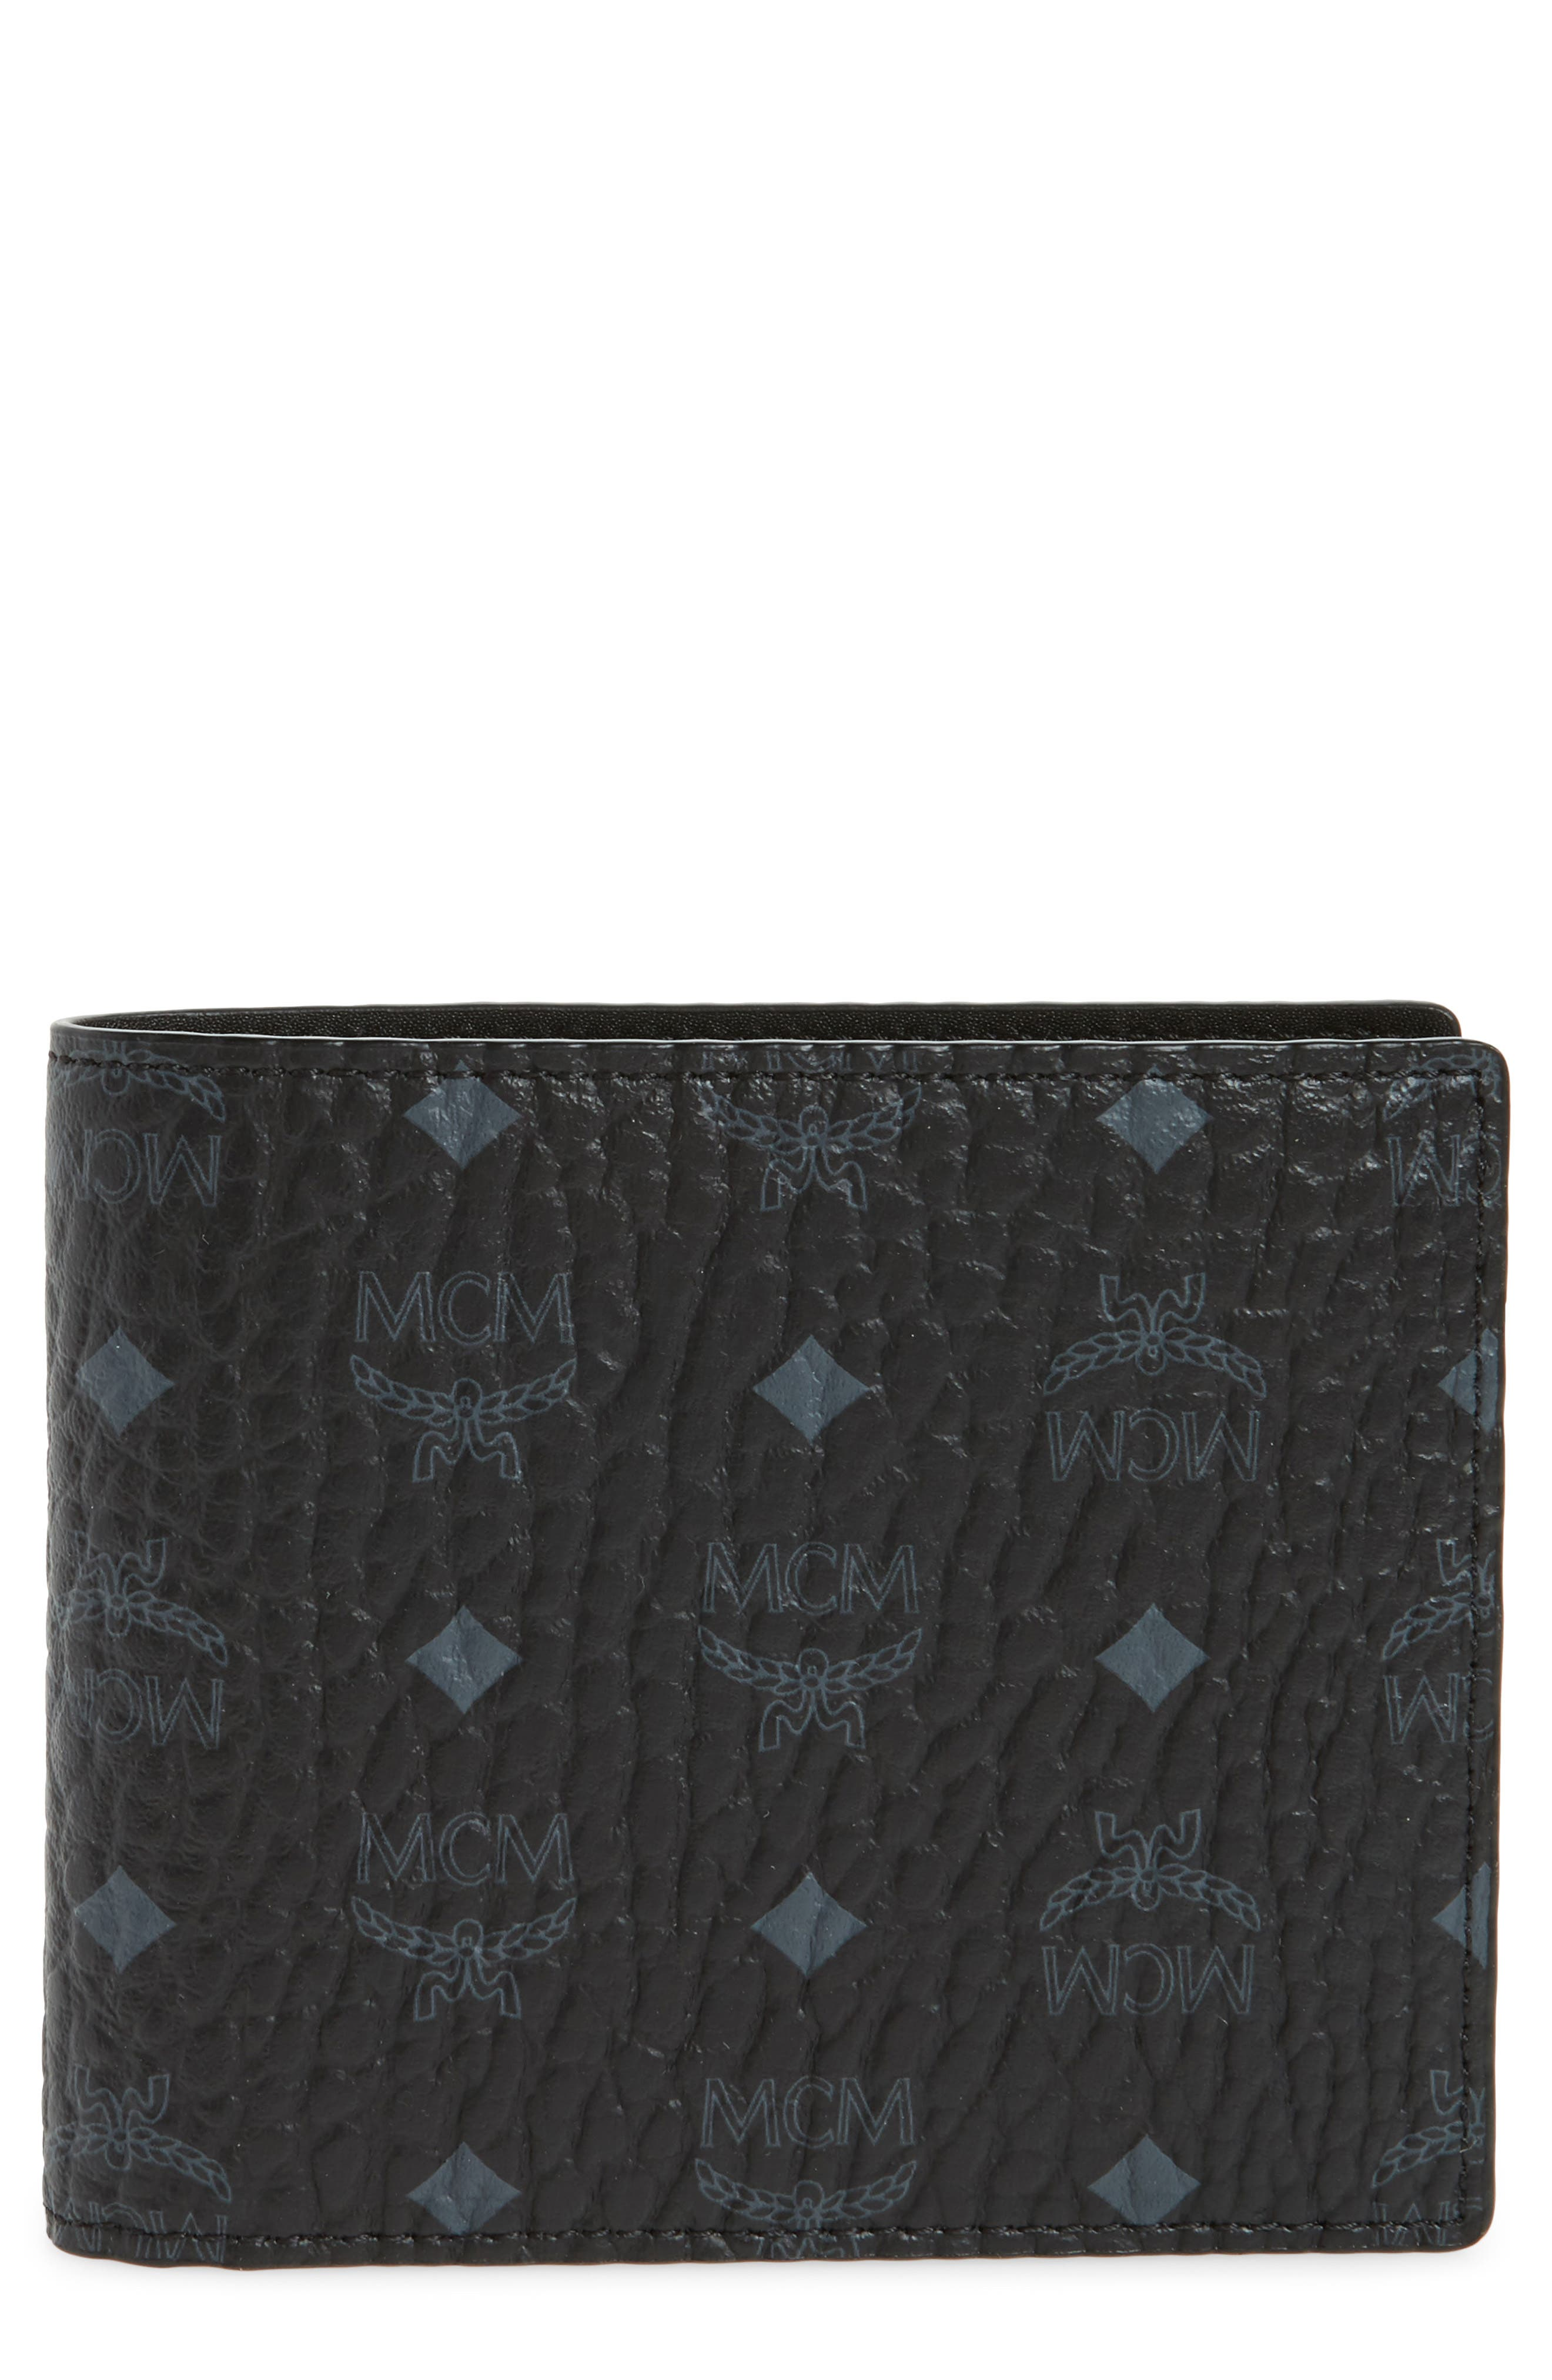 MCM Logo Coated Canvas & Leather Wallet, Main, color, BLACK